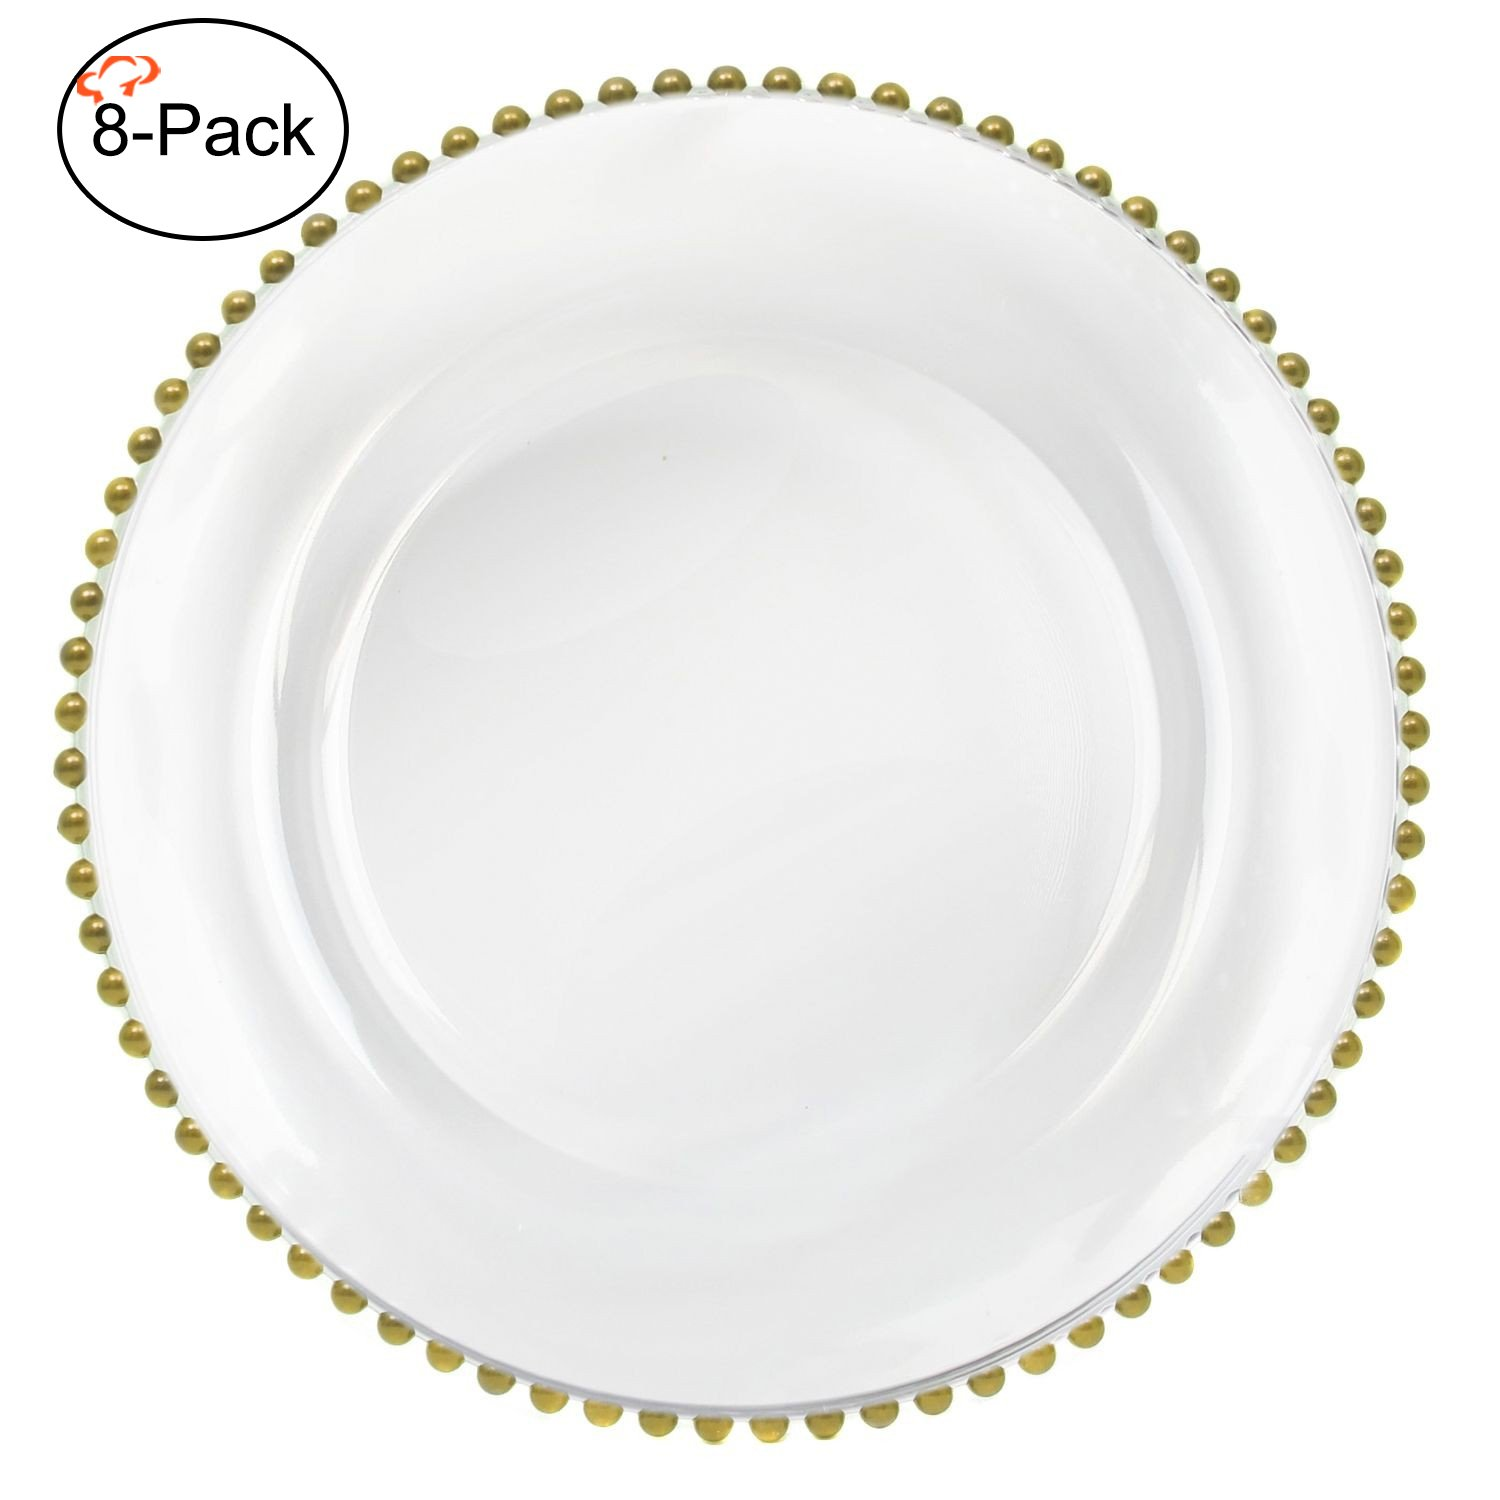 Tiger Chef 13-inch Clear Round Beaded Glass Charger Plates Set of 2,4,6, 12 or 24 Dinner Chargers 8-Pack (8, Gold)